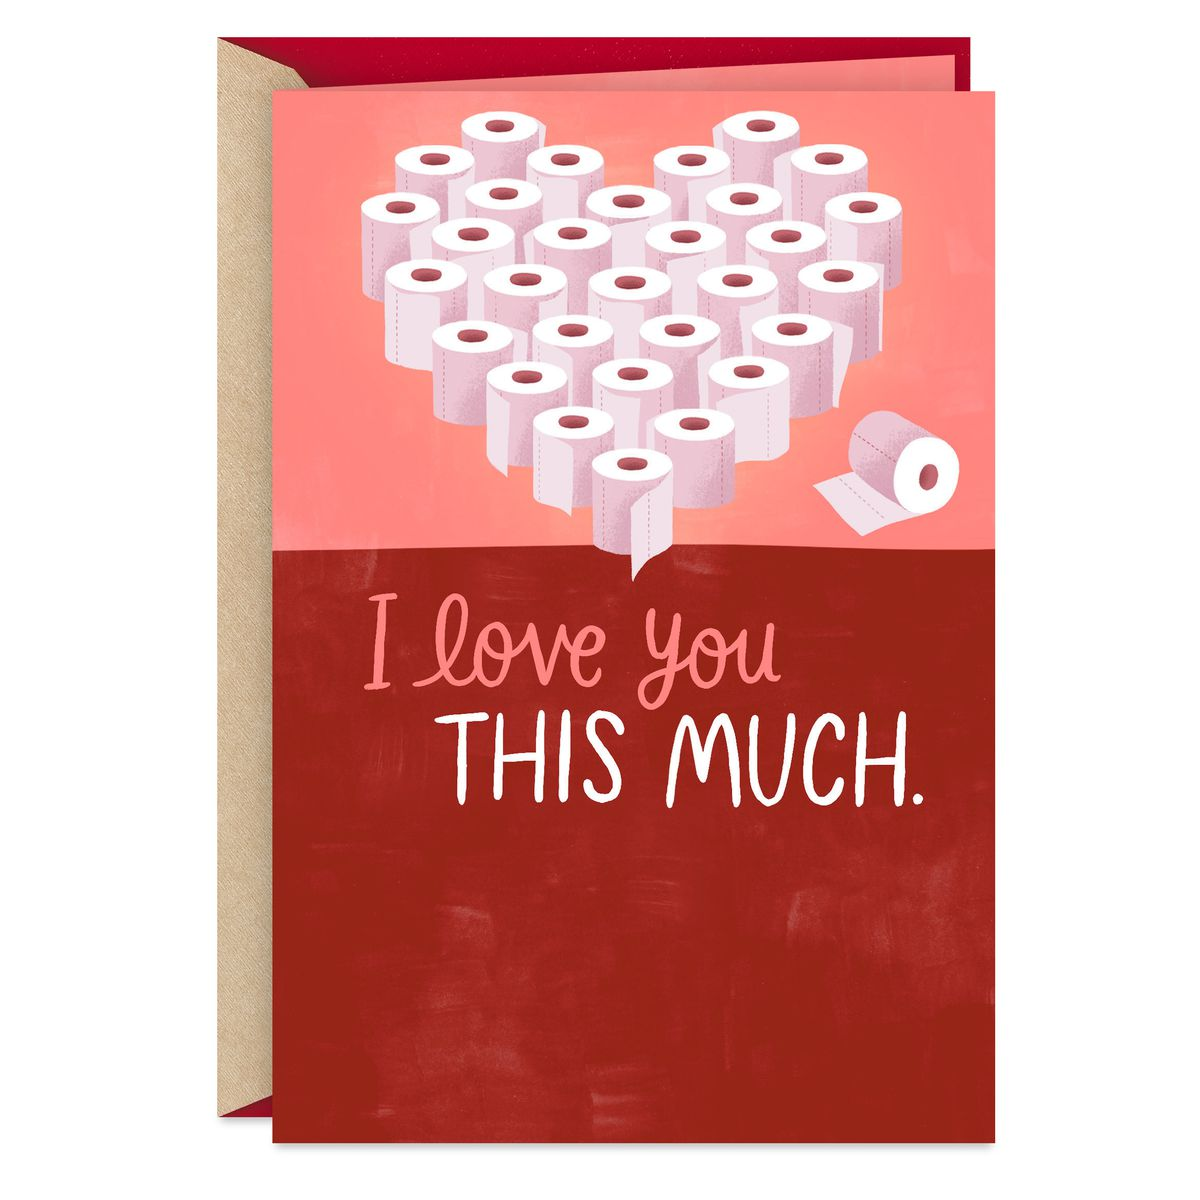 "a card with a heart made out of toilet paper rolls reading ""I love you this much"""